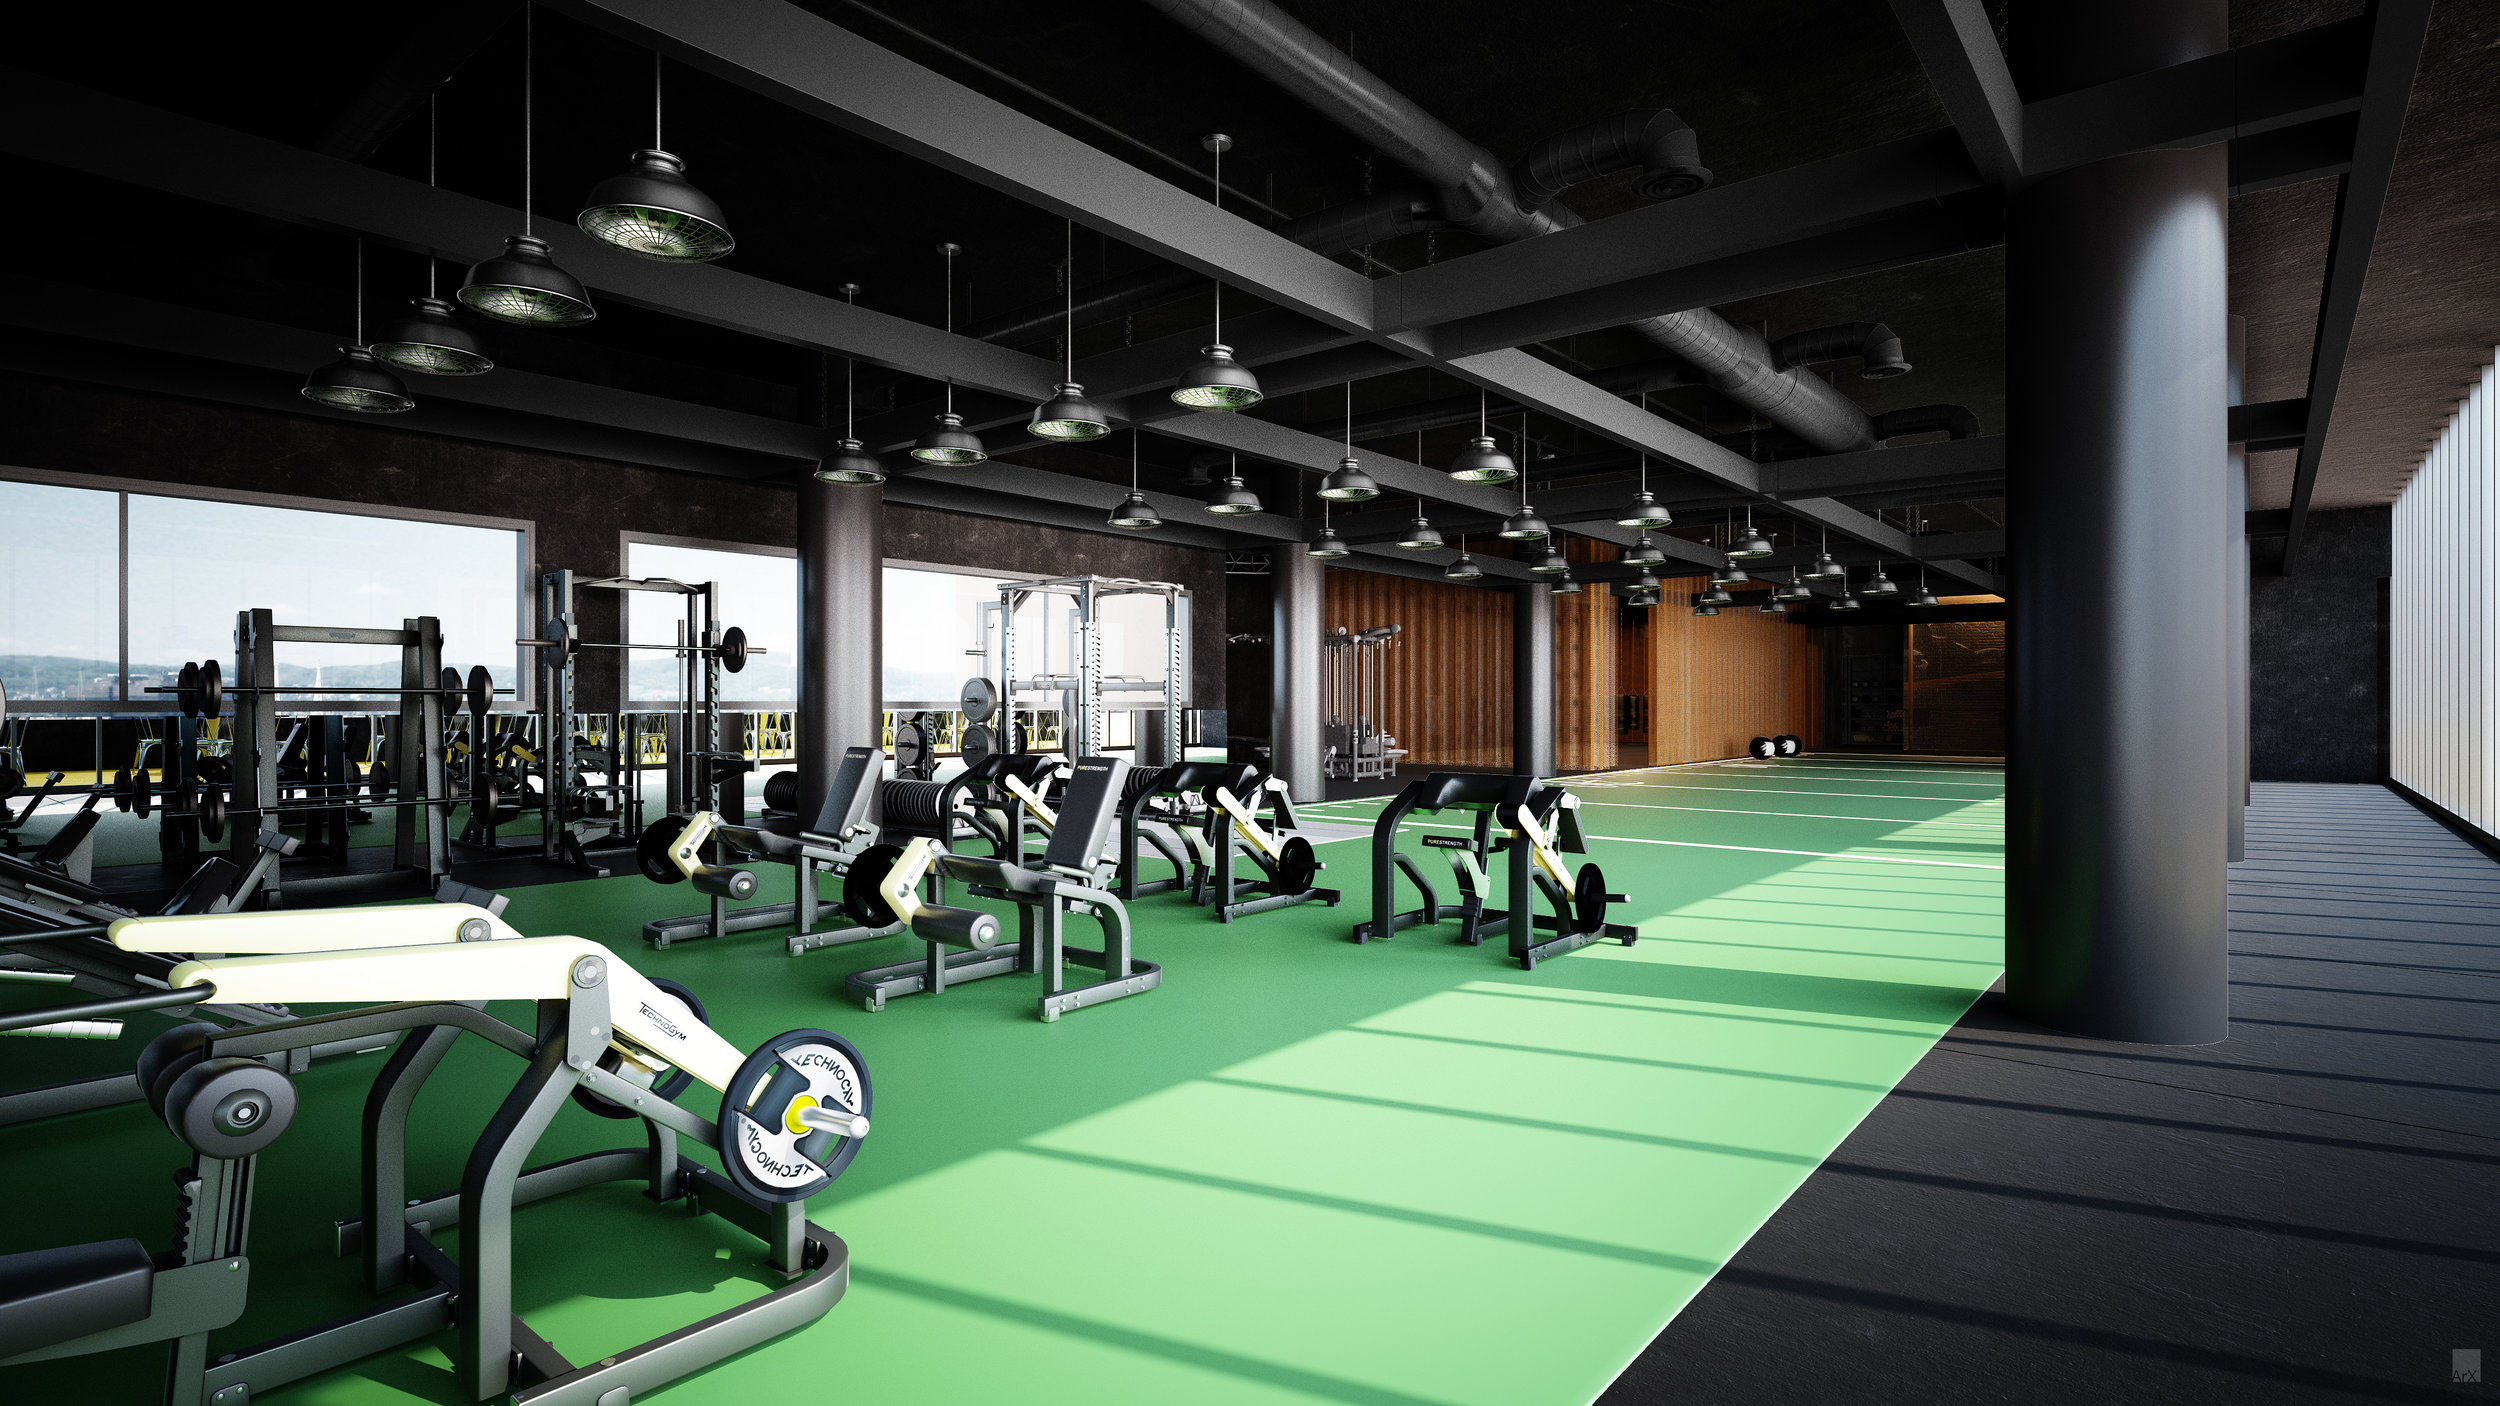 Midtown_Chicago___Fitness_Training___DMAC_Architecture.jpg